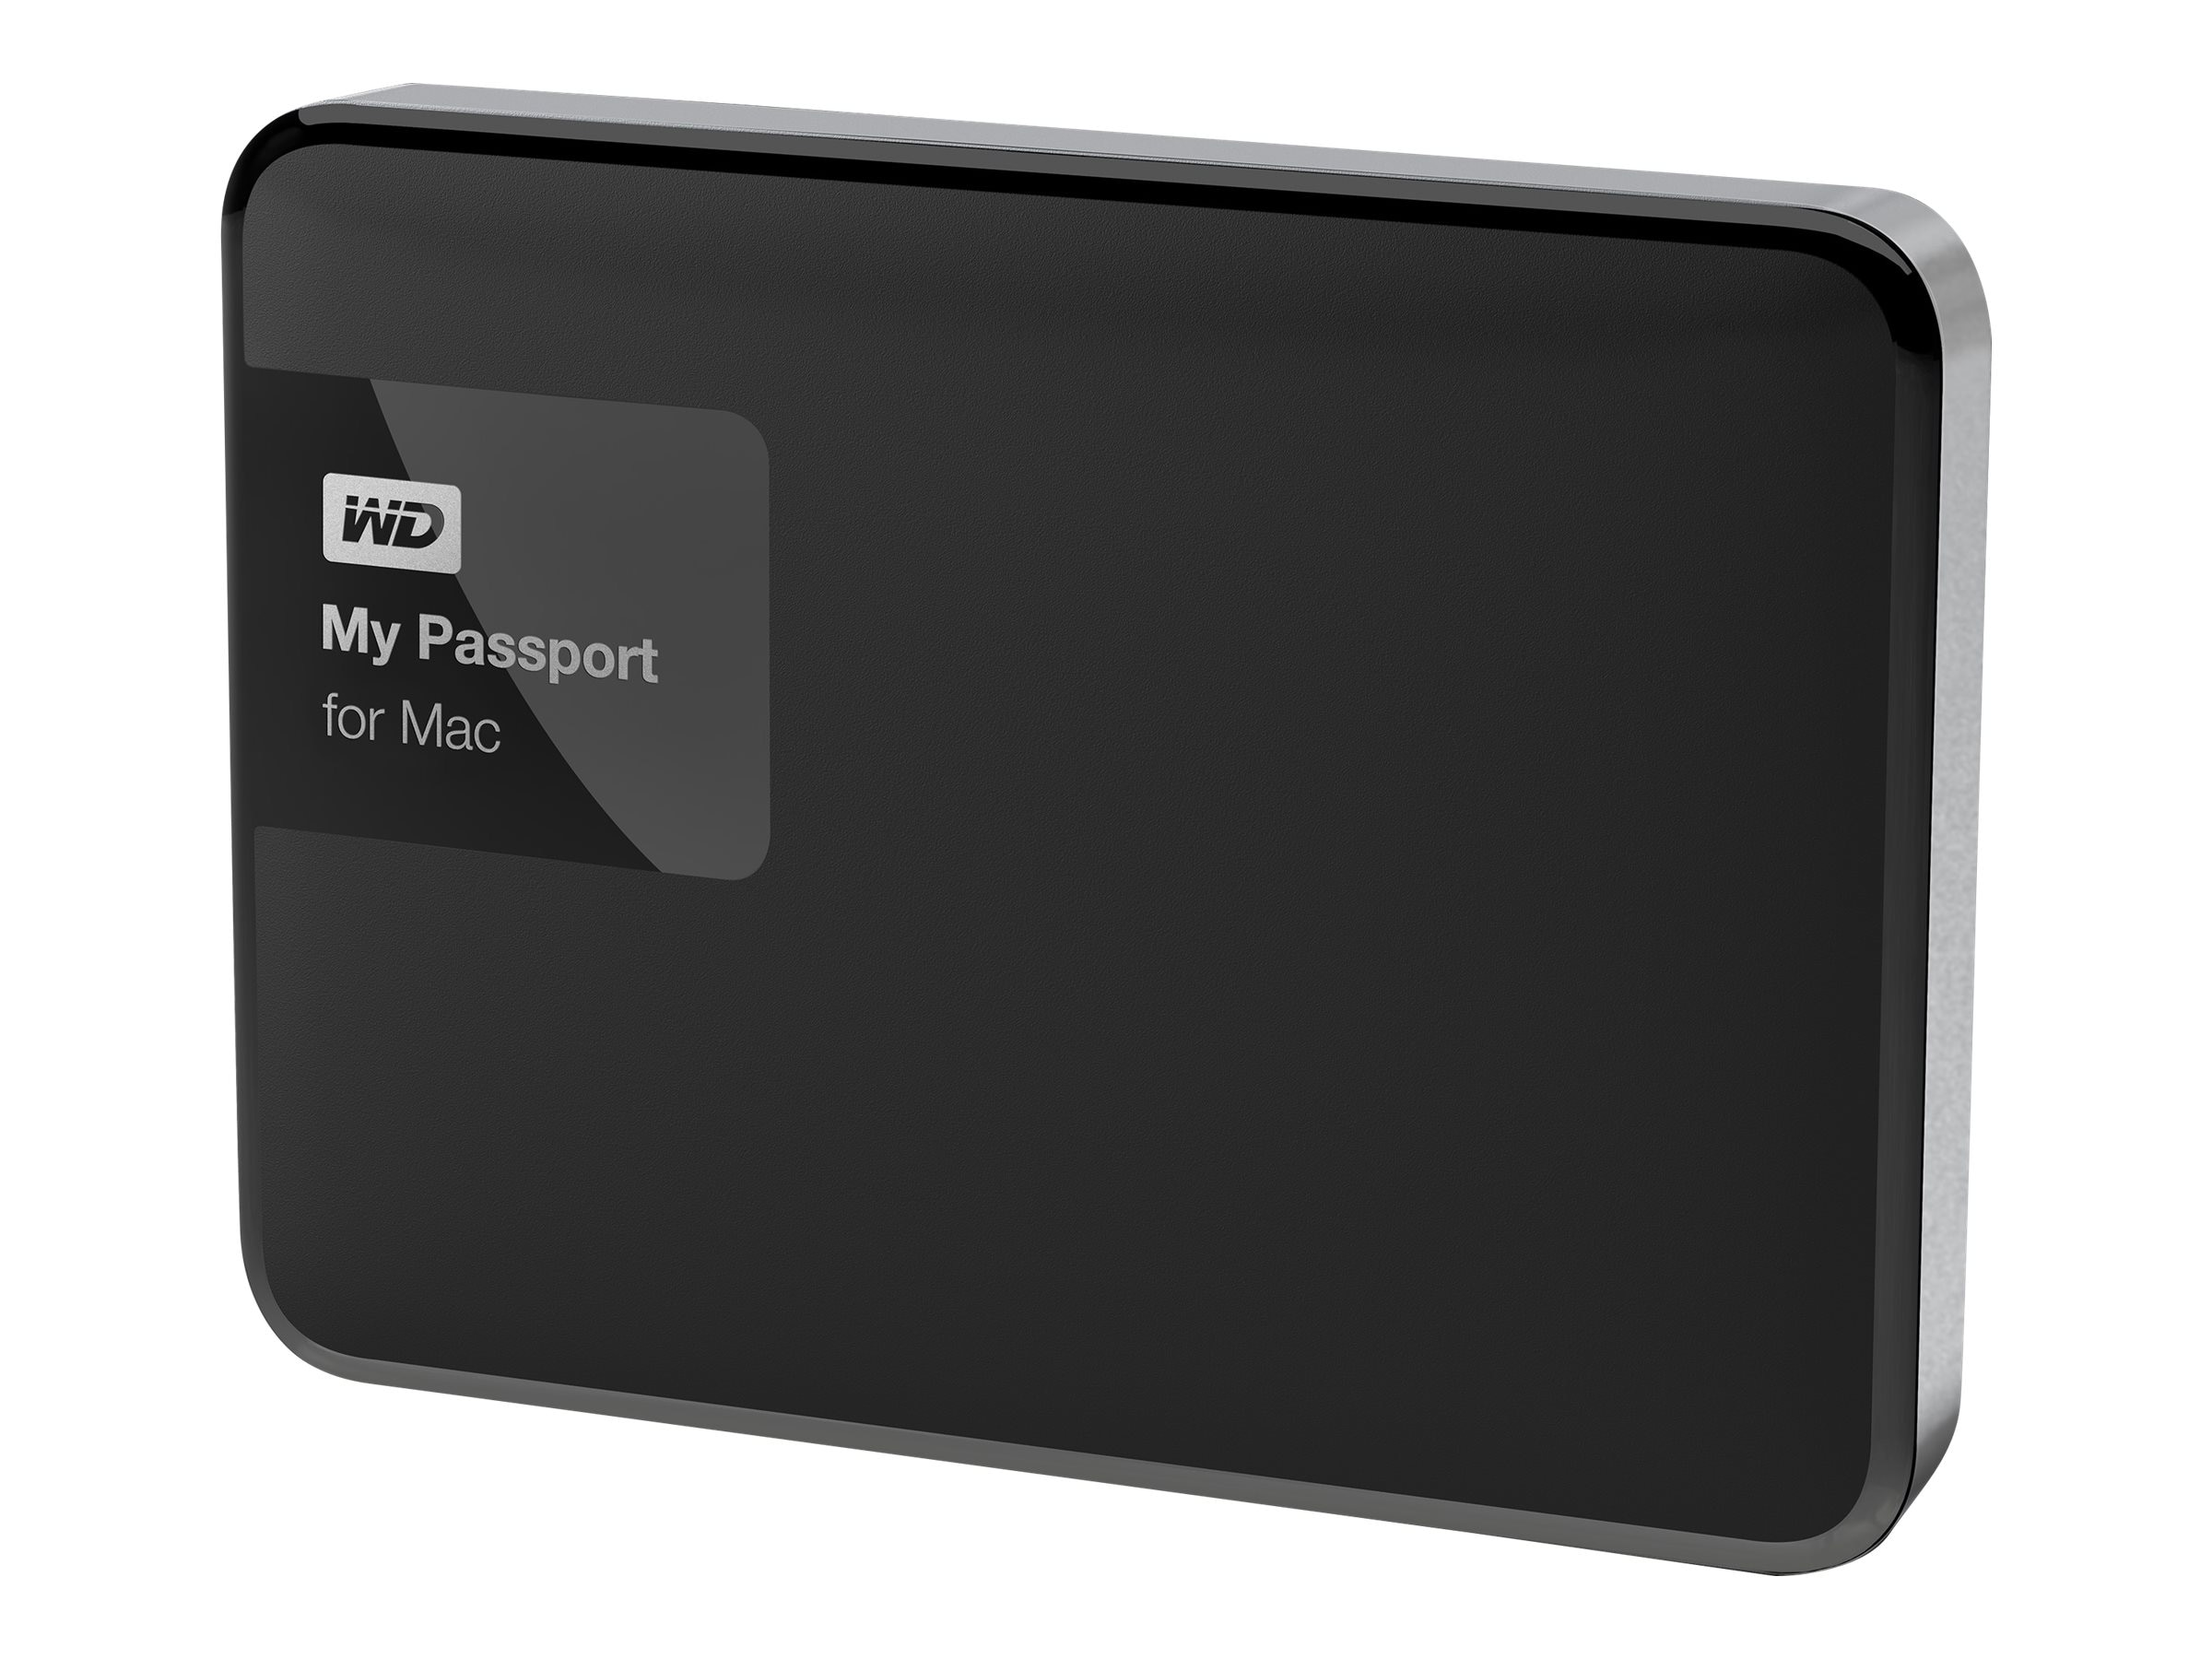 WD 1TB My Passport for Mac USB 3.0 Portable Hard Drive, WDBJBS0010BSL-NESN, 22159004, Hard Drives - External